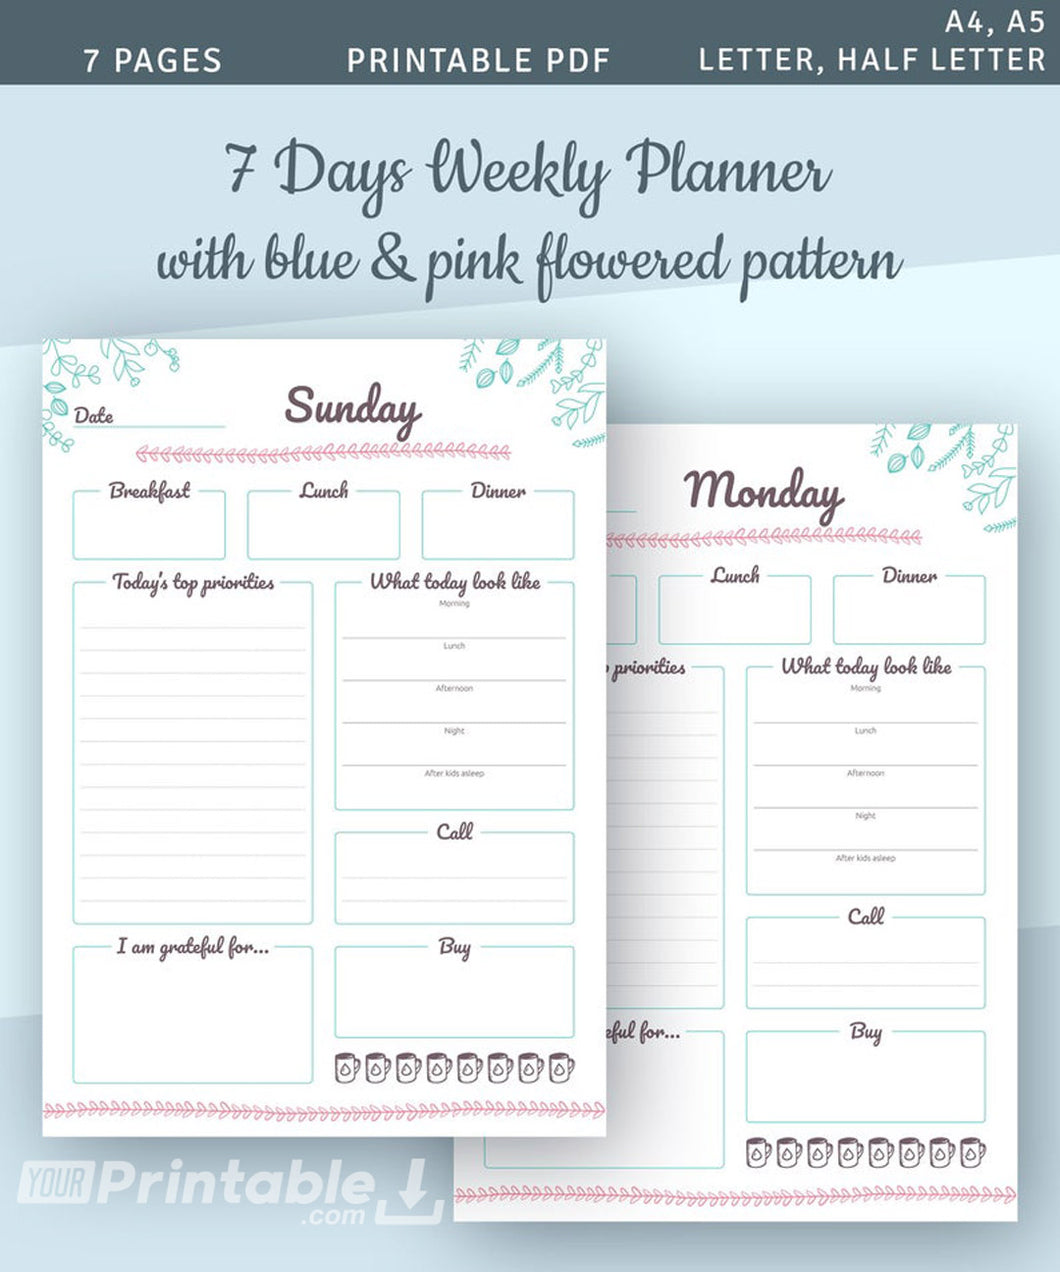 7 Days Weekly Planner Template - Digital Download PDF